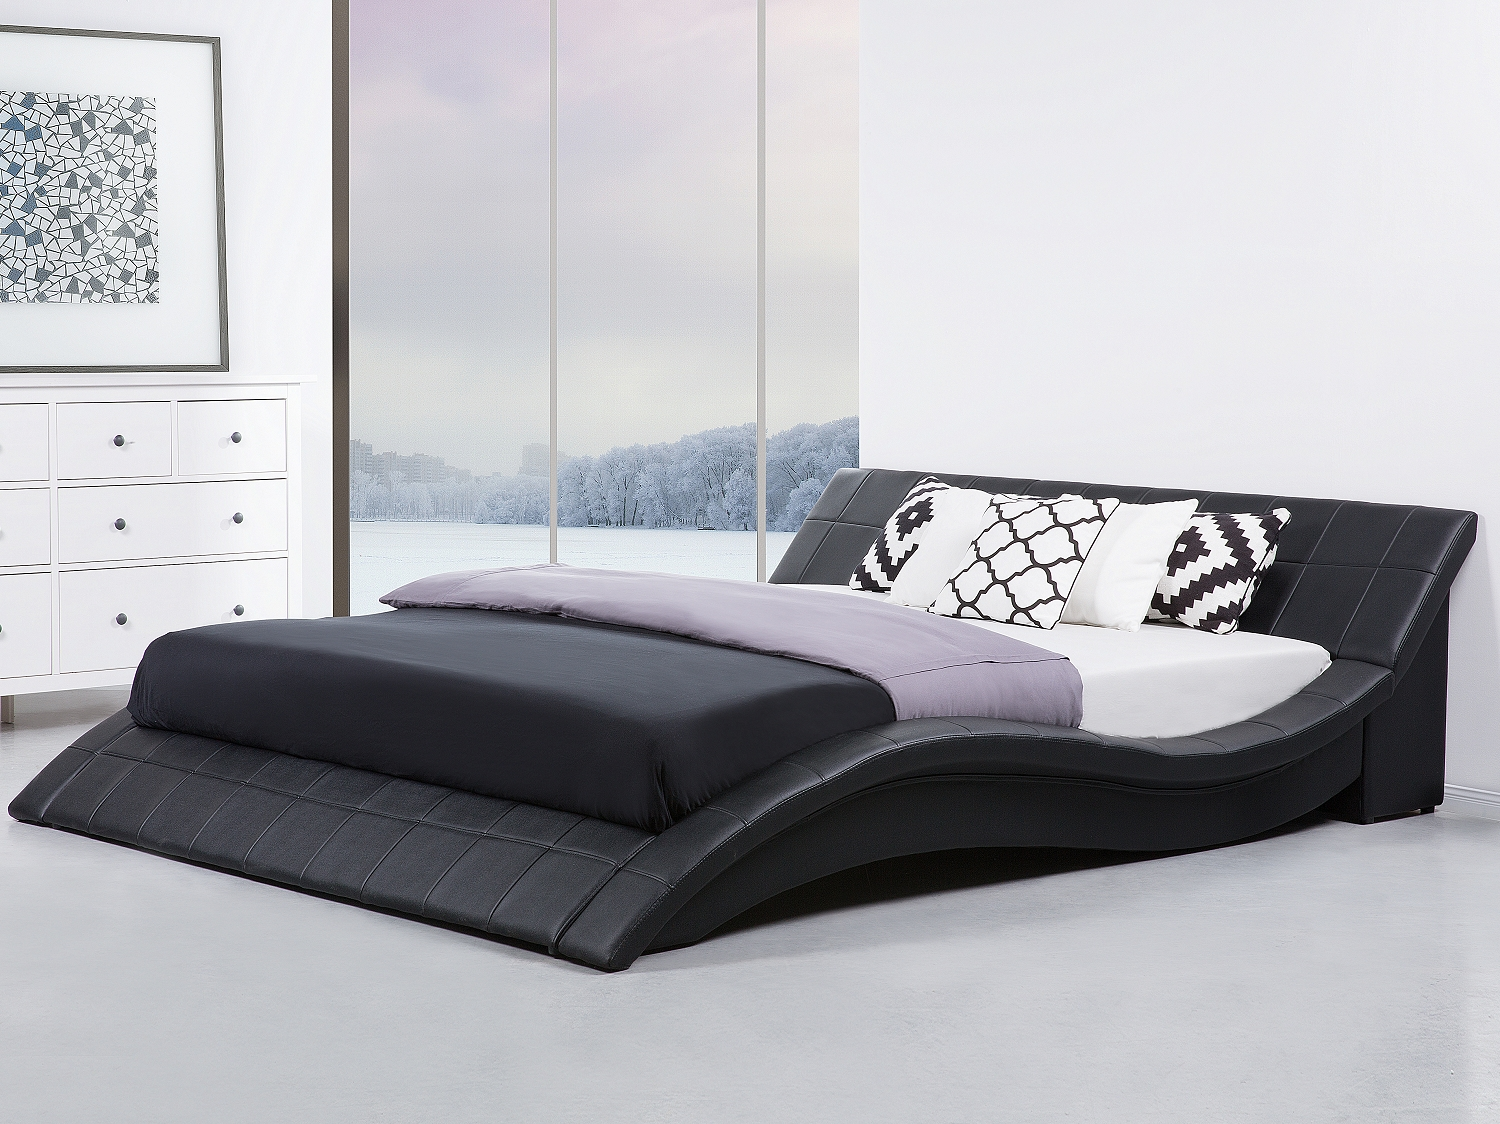 modern king size bed frame sleigh 6ft genuine leather headboard wave black glam ebay. Black Bedroom Furniture Sets. Home Design Ideas